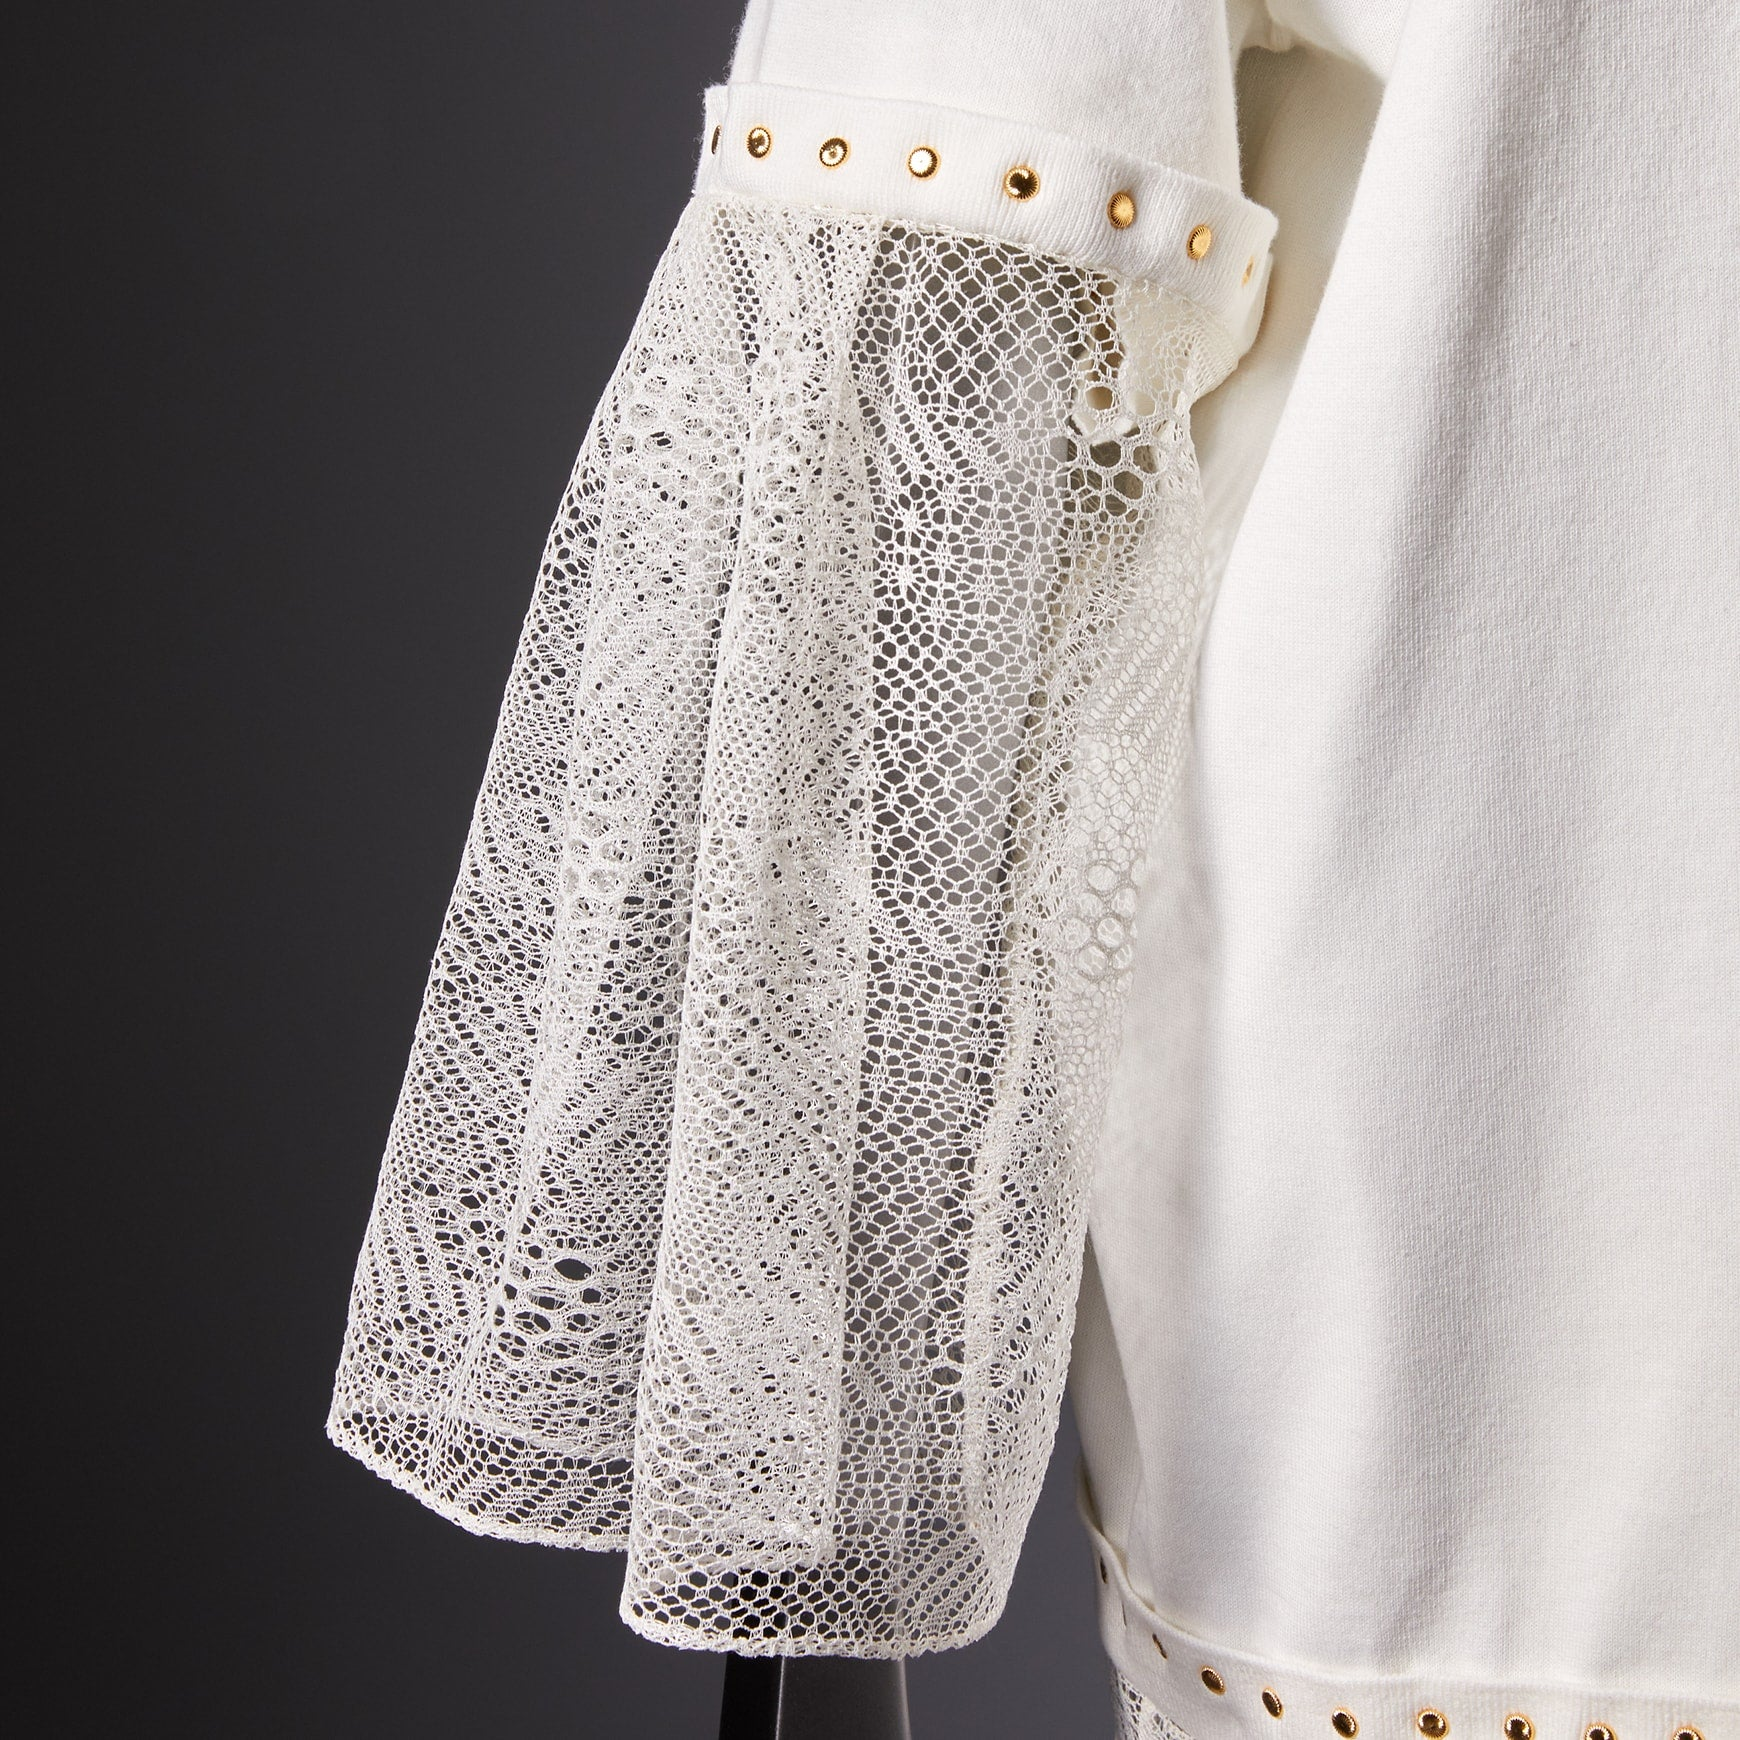 TYPE-1 Knit Half Sleeves French Lace Sleeve Parts Long (White Cells)